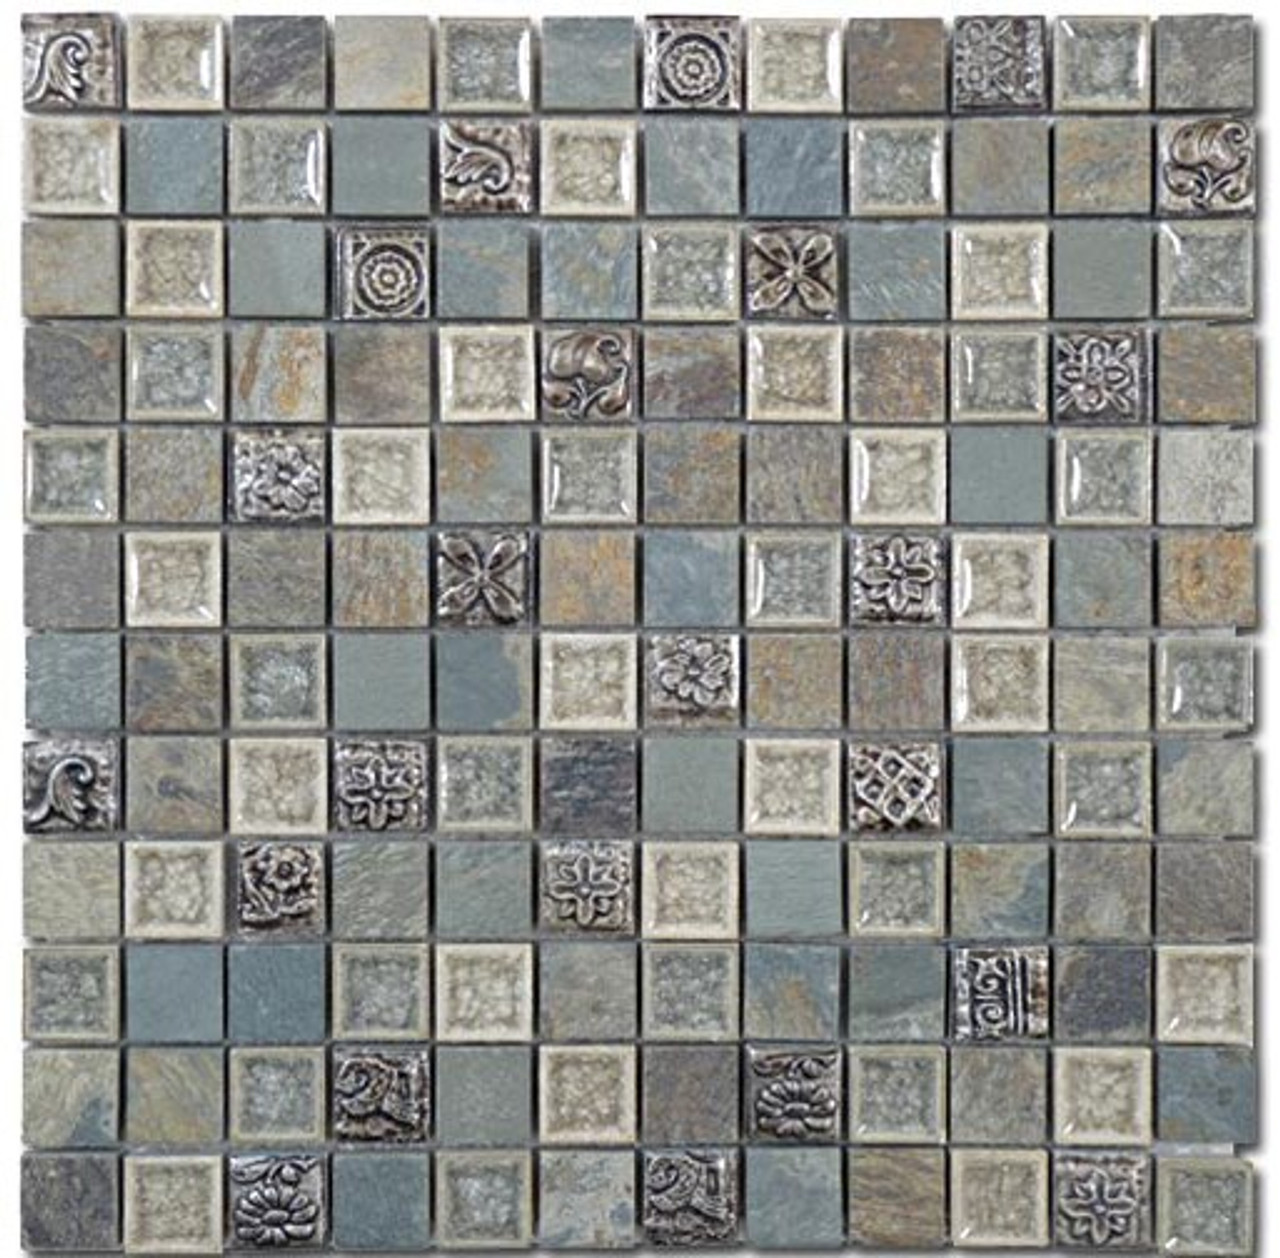 Bella Glass Tiles Tranquil Series 1 x 1 Methodical Grey